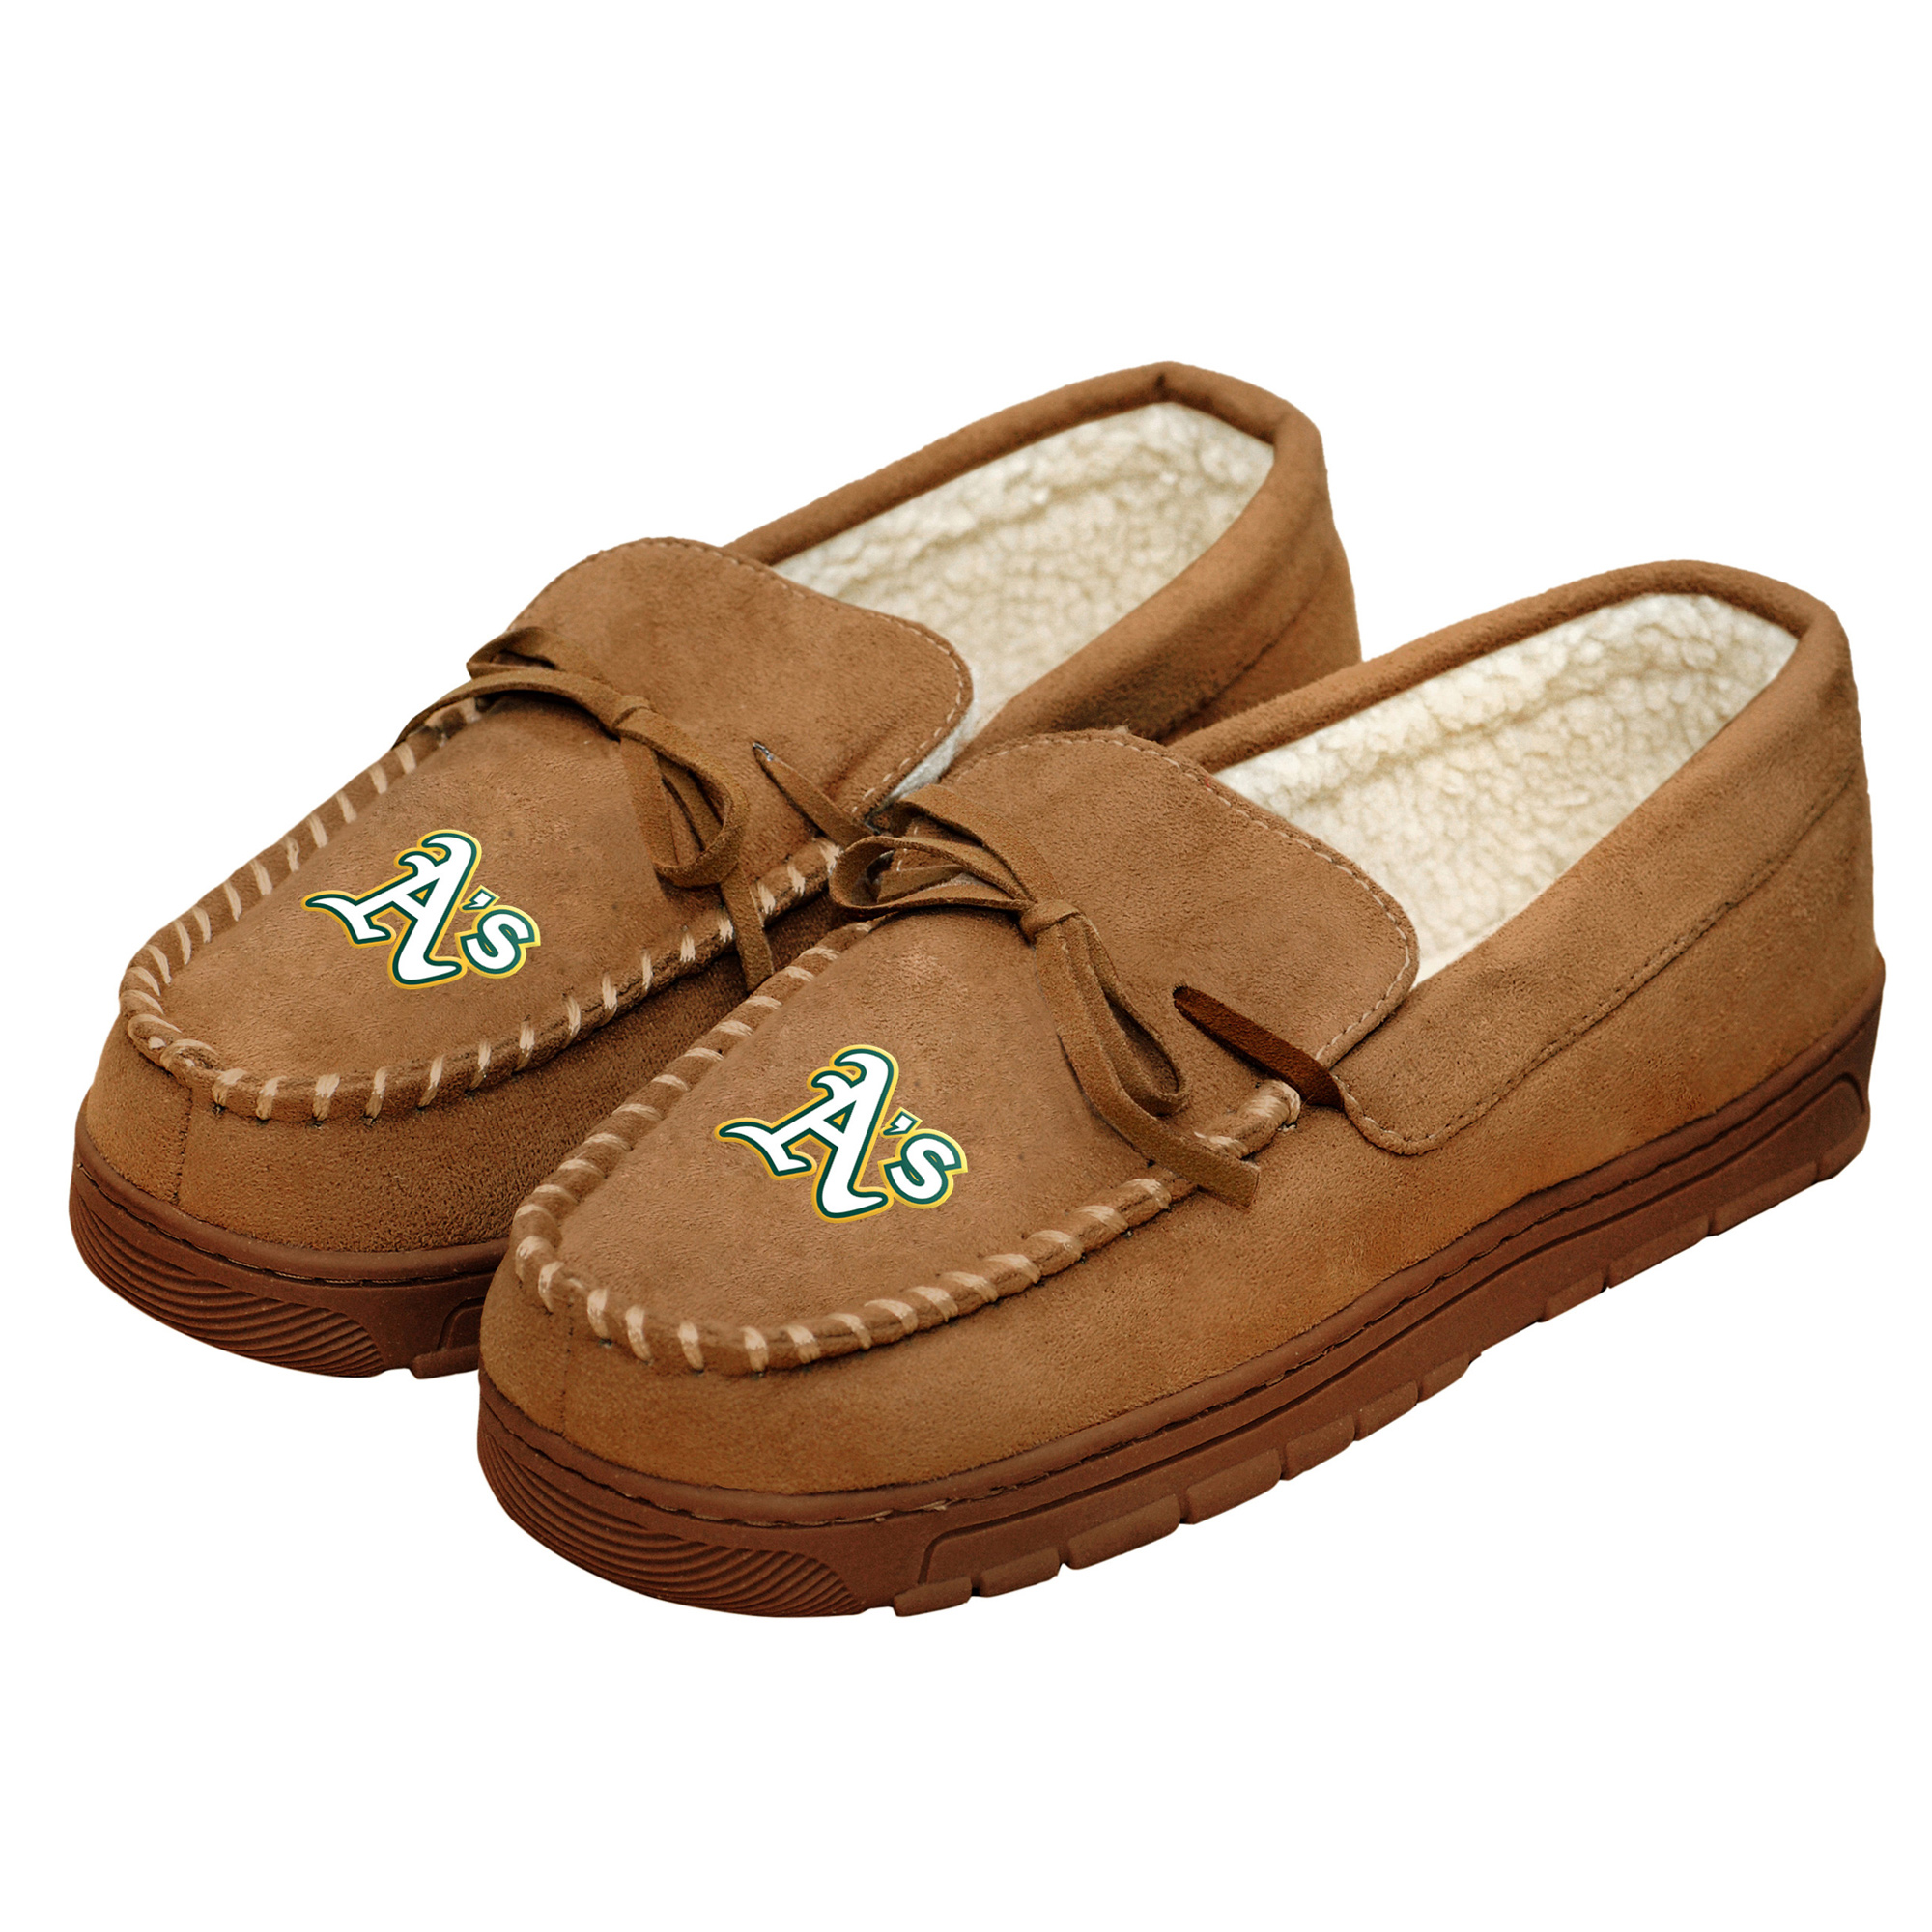 Oakland Athletics Moccasin Slippers